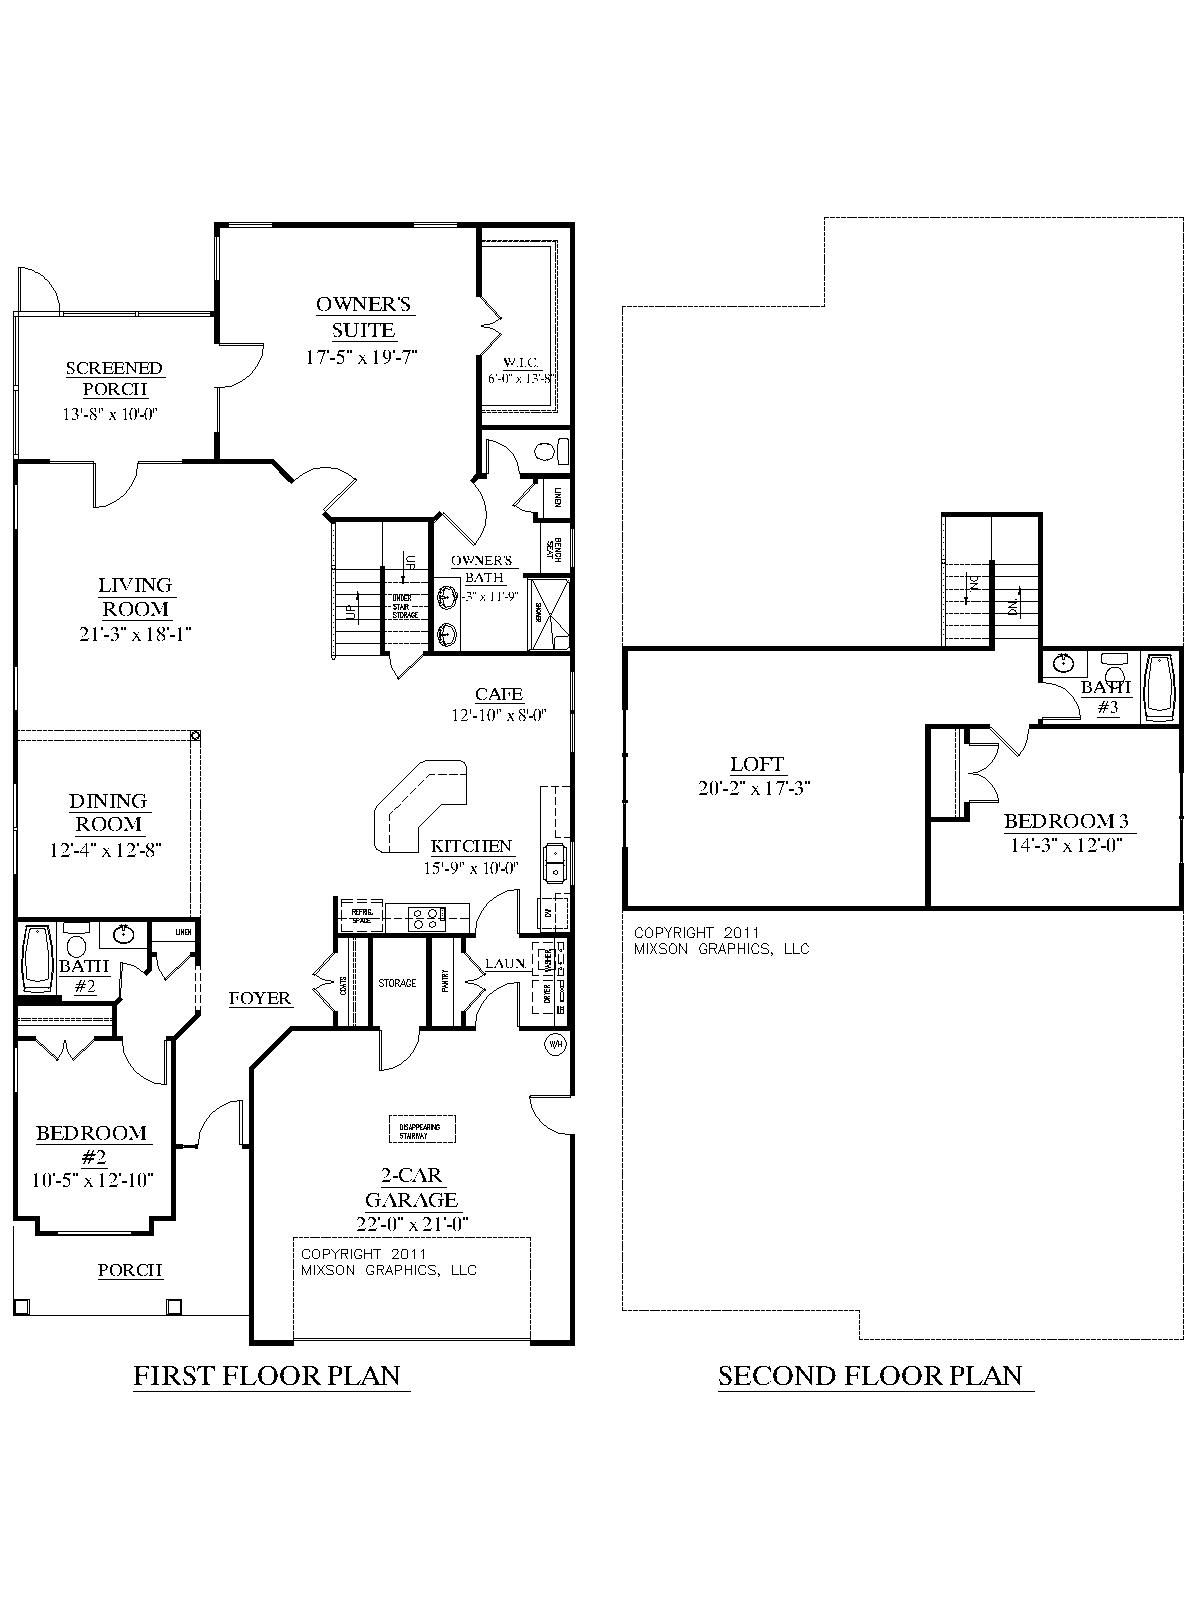 House plan 2755 woodbridge floor plan traditional 1 1 2 for House plans with downstairs master bedroom